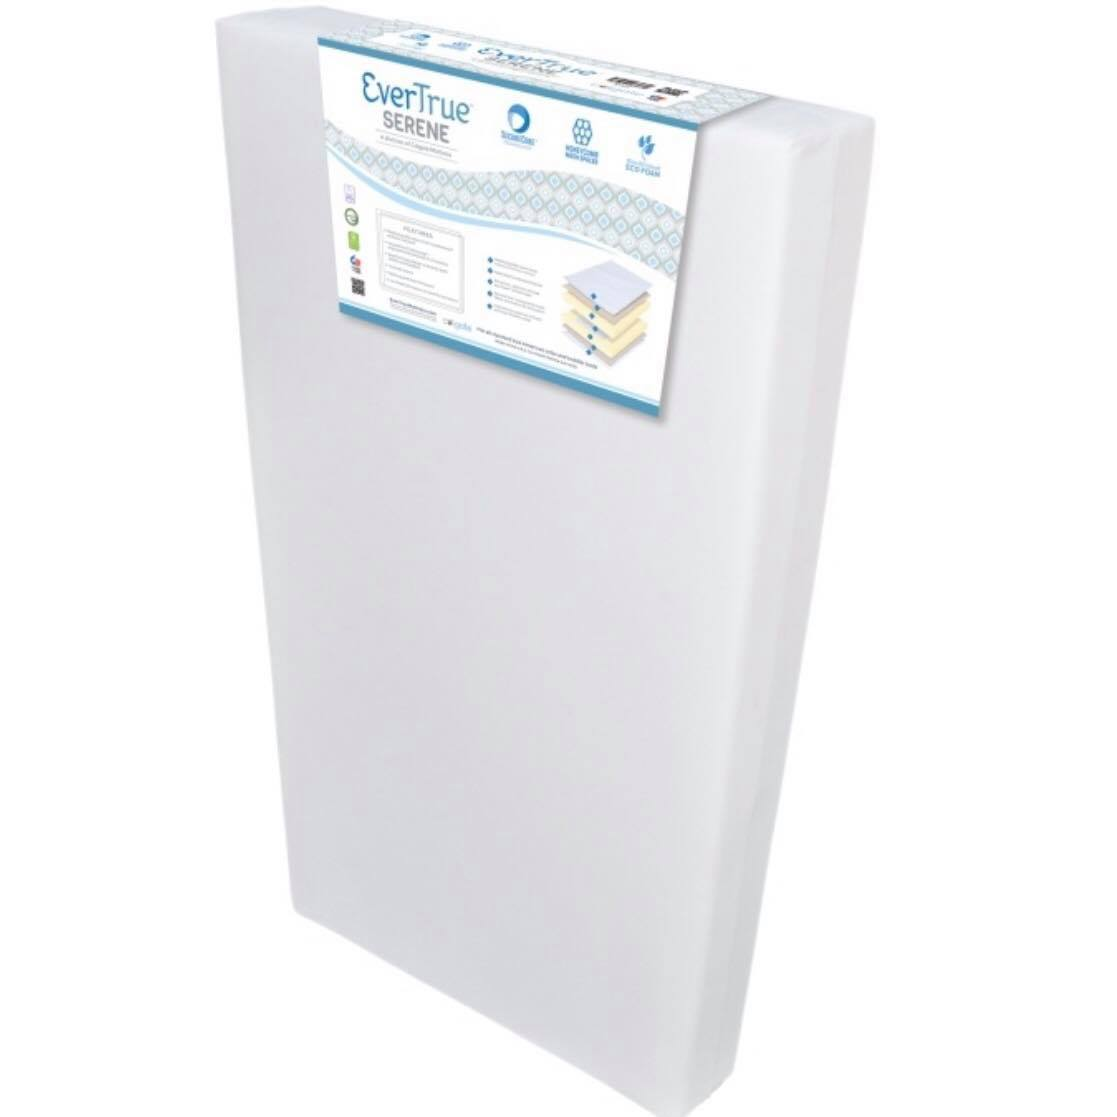 Evertrue Serene Crib Mattress